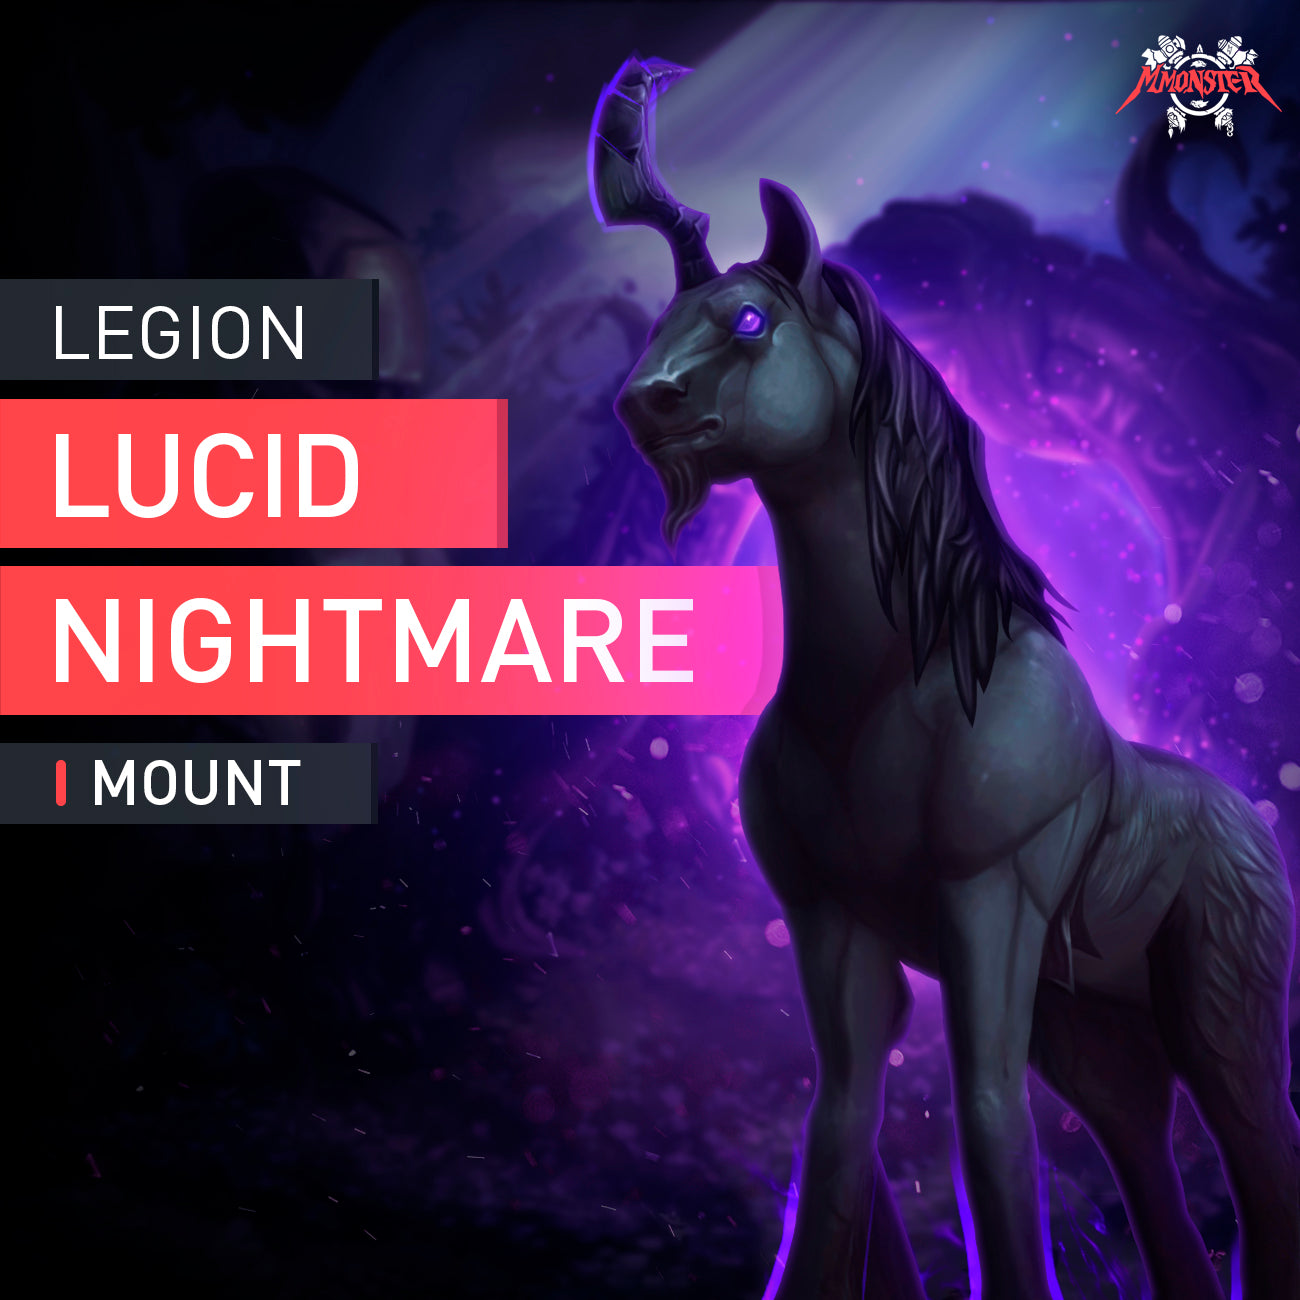 Lucid Nightmare Mount - MMonster